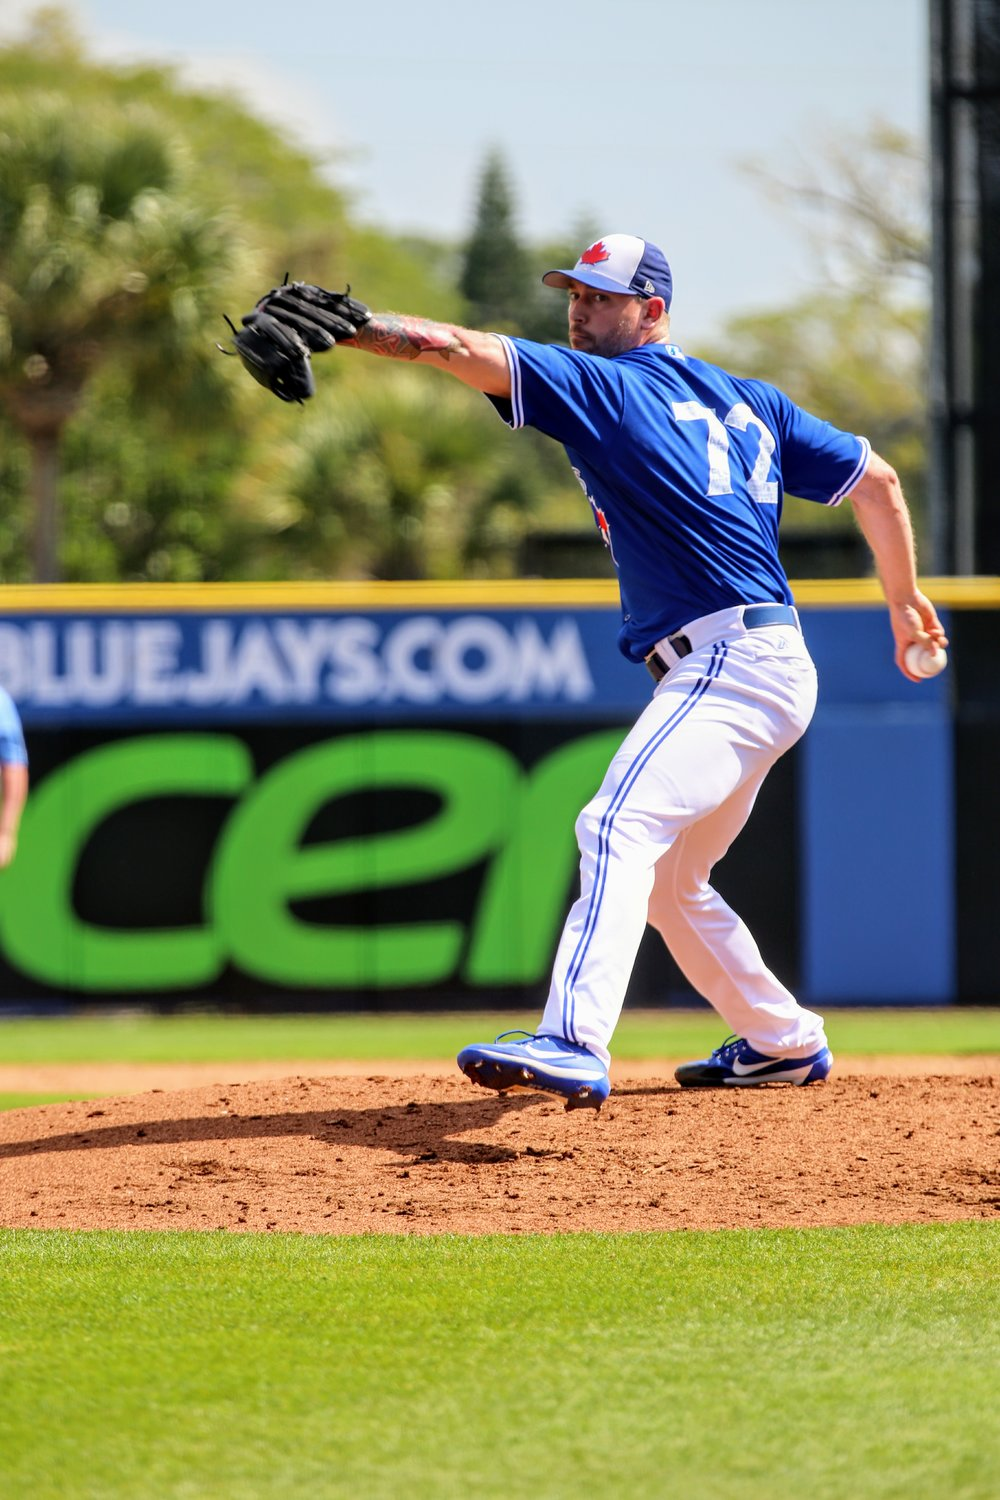 Port Dover, Ont., native John Axford pitched a scoreless third inning for the Toronto Blue Jays in the club's 9-8 loss to the New York Yankees on Monday. Photo Credit: Amanda Fewer